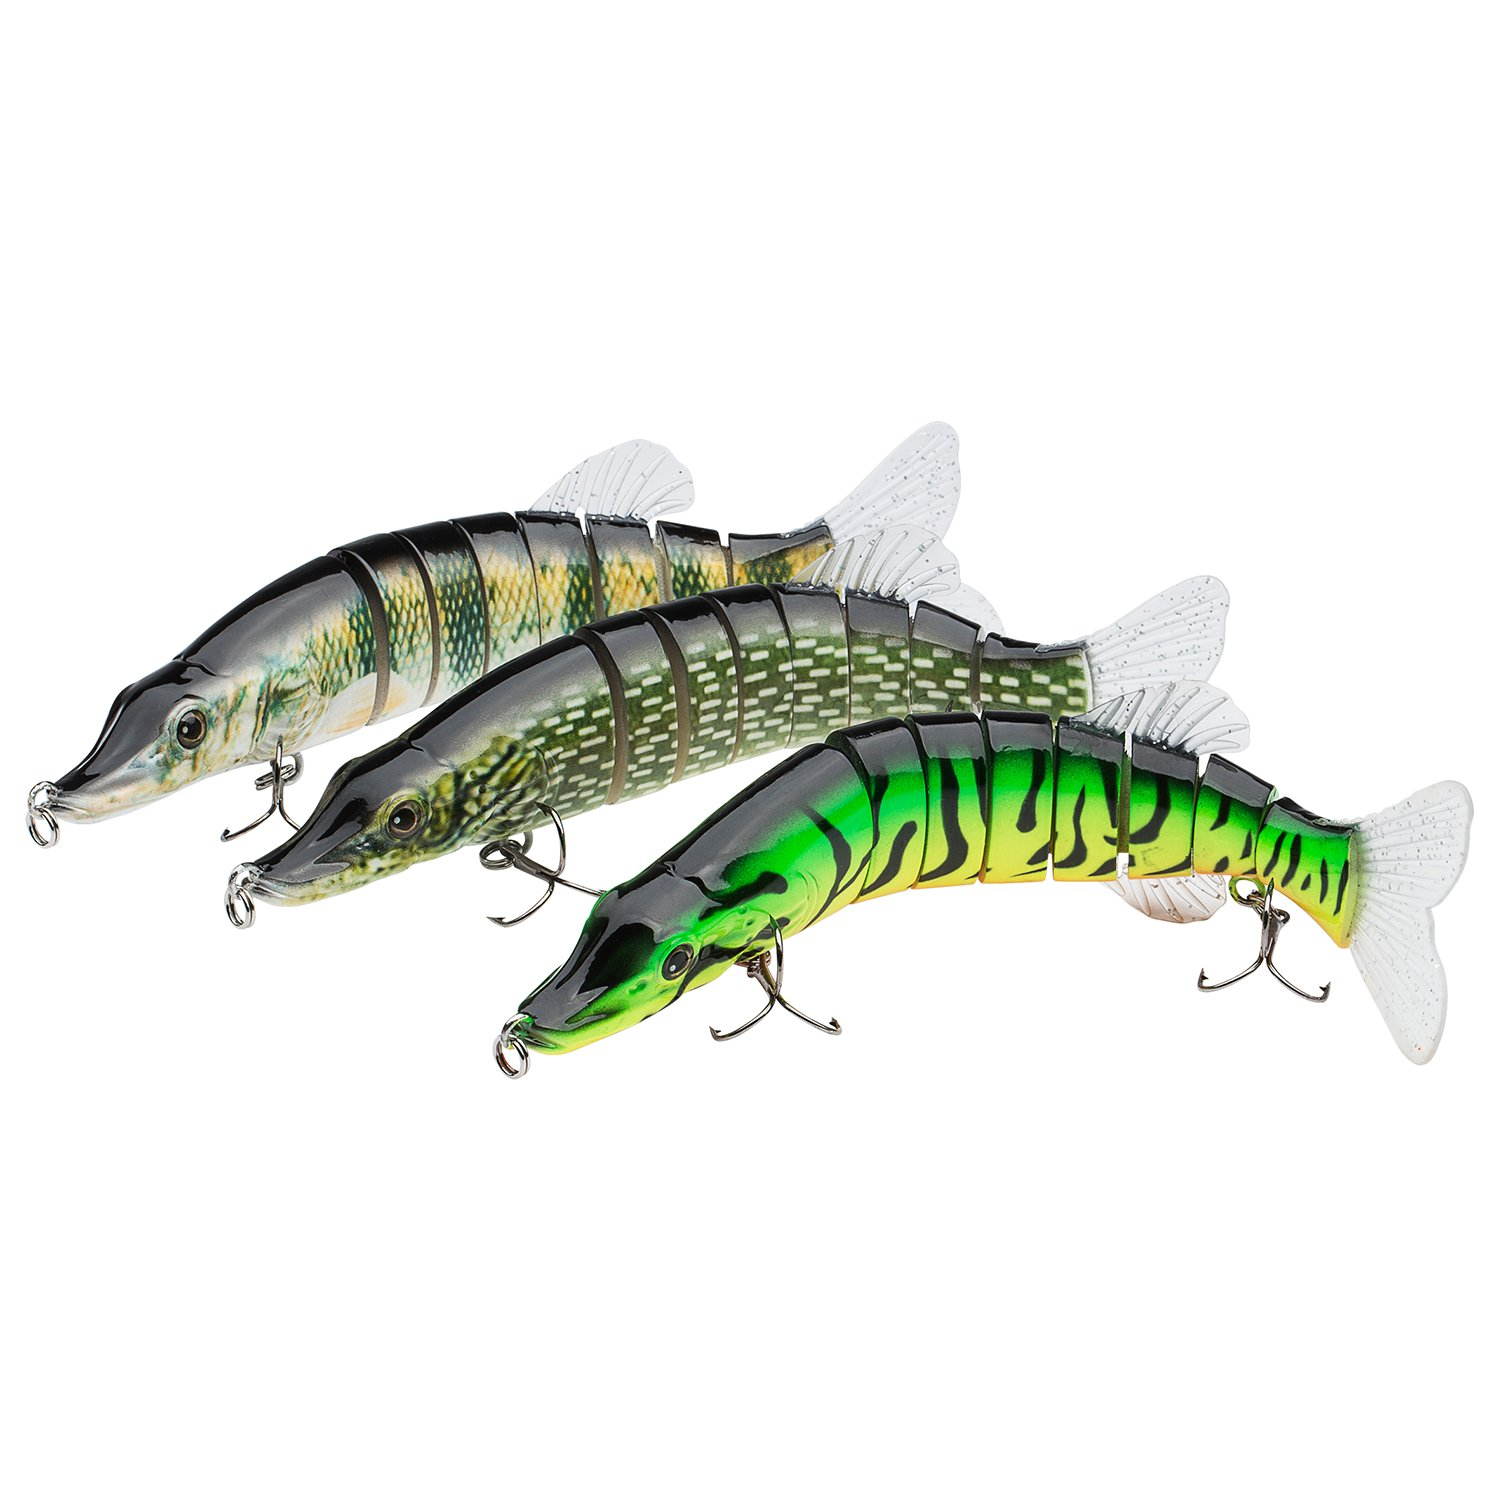 Bassdash Swimpike Multi Jointed Swimbaits Bass Fishing Lure Hard Body Soft Fins 8'' 2-1/2oz, 4 Colors, Pack of 3 Colors (FNP)